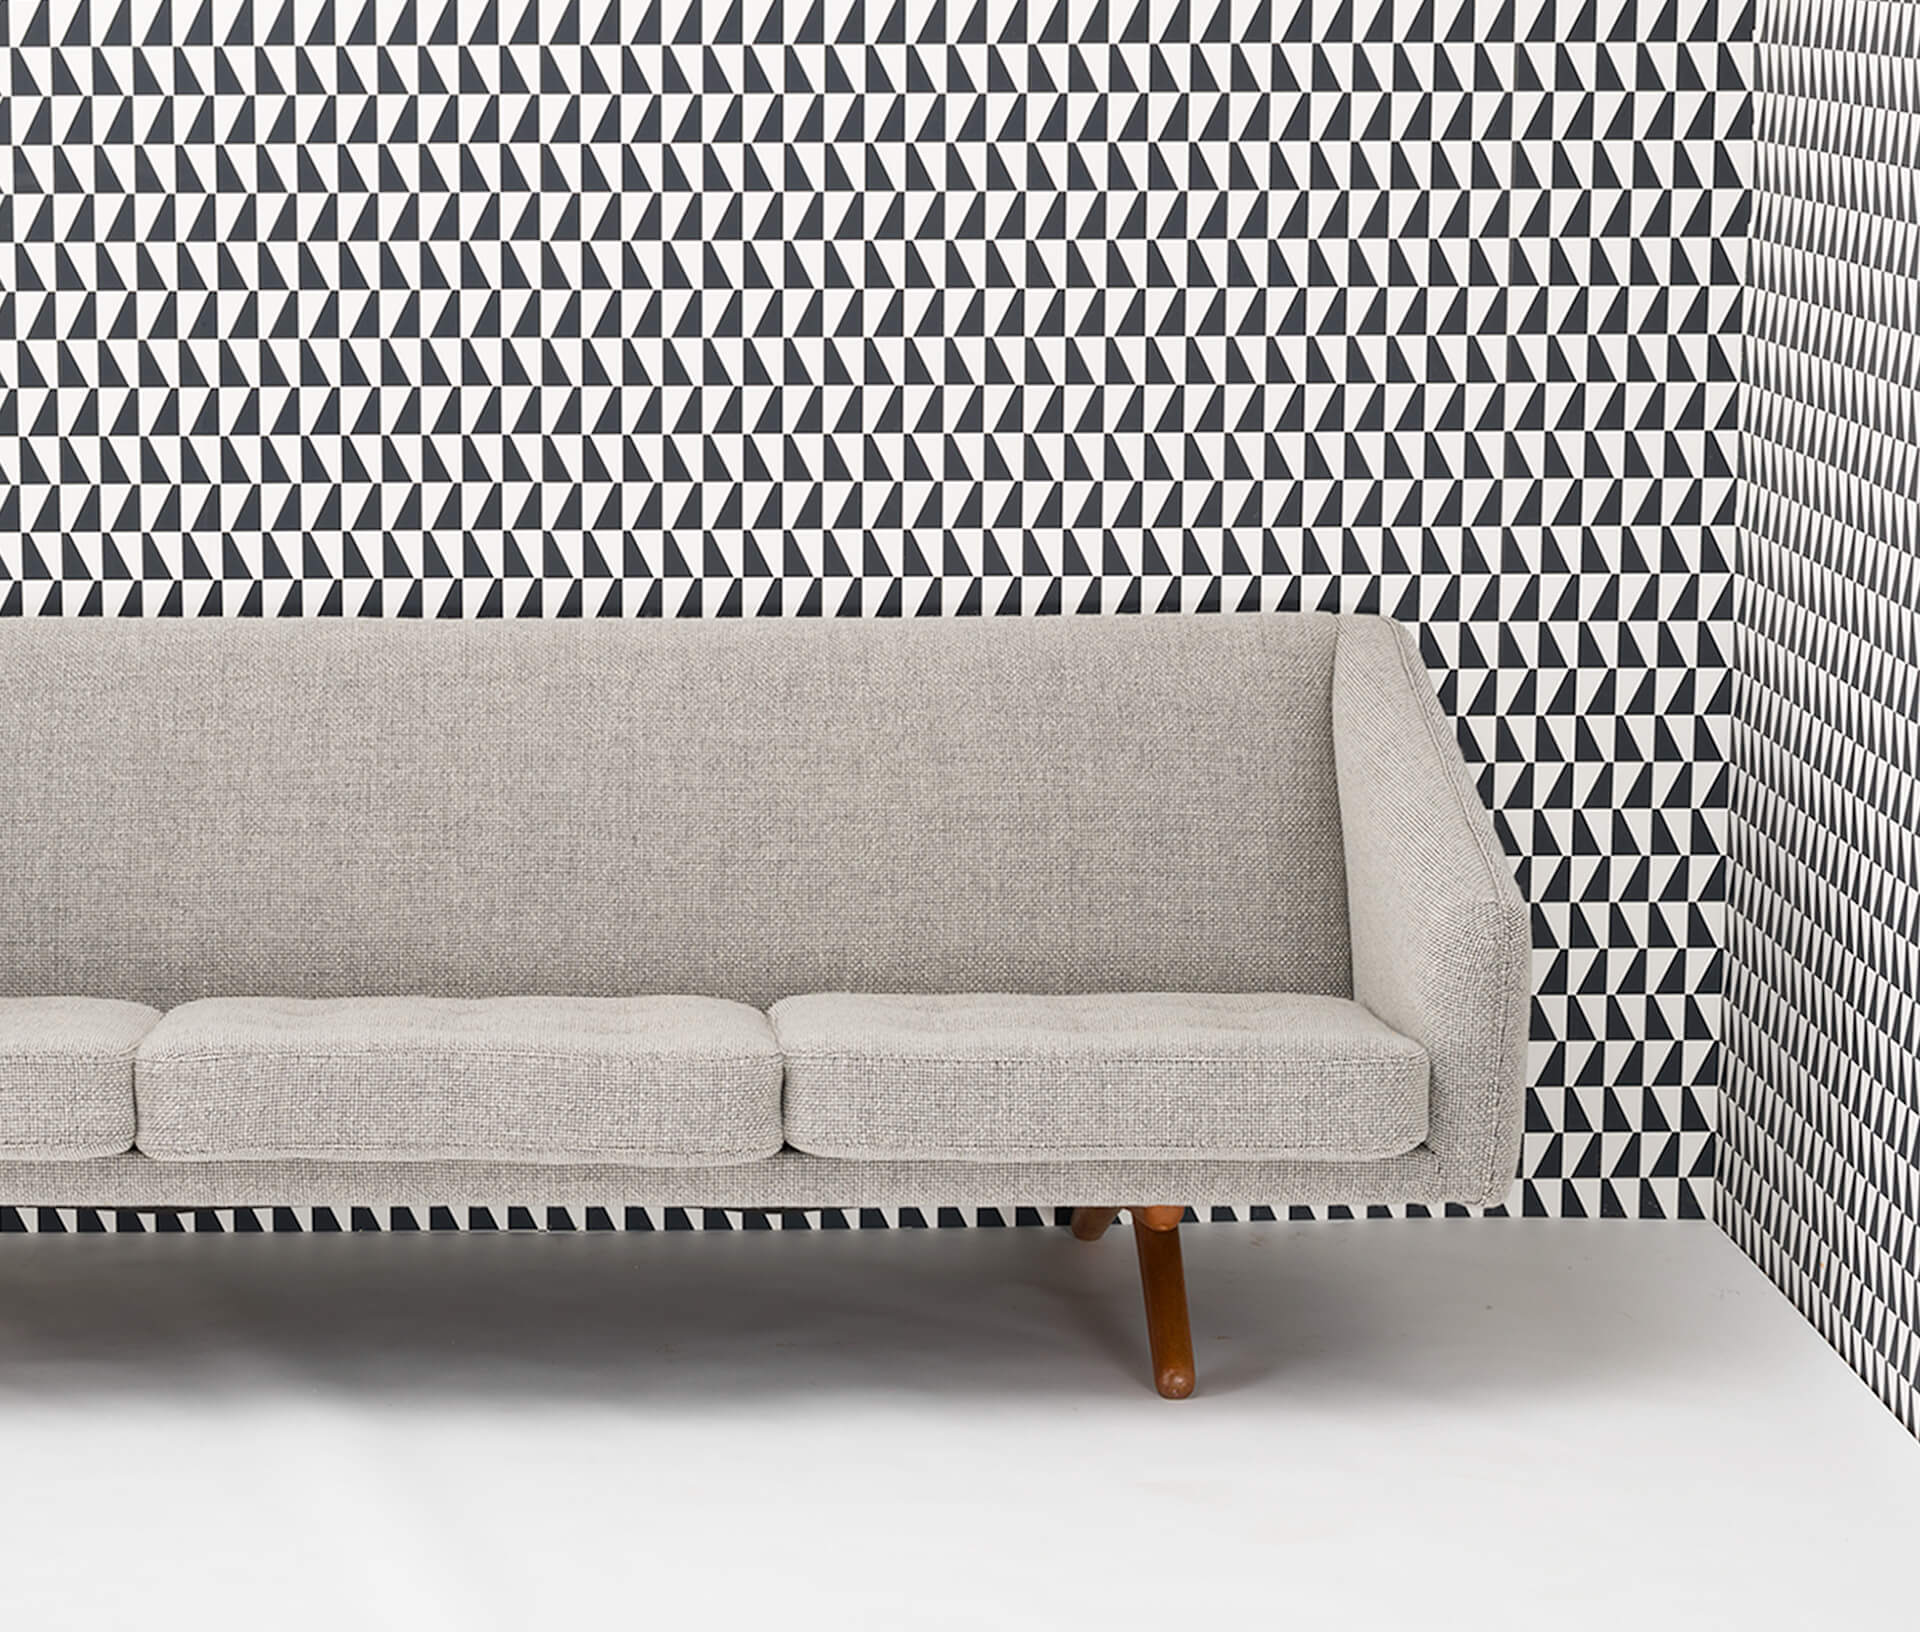 ML-90 Sofa: Design classic